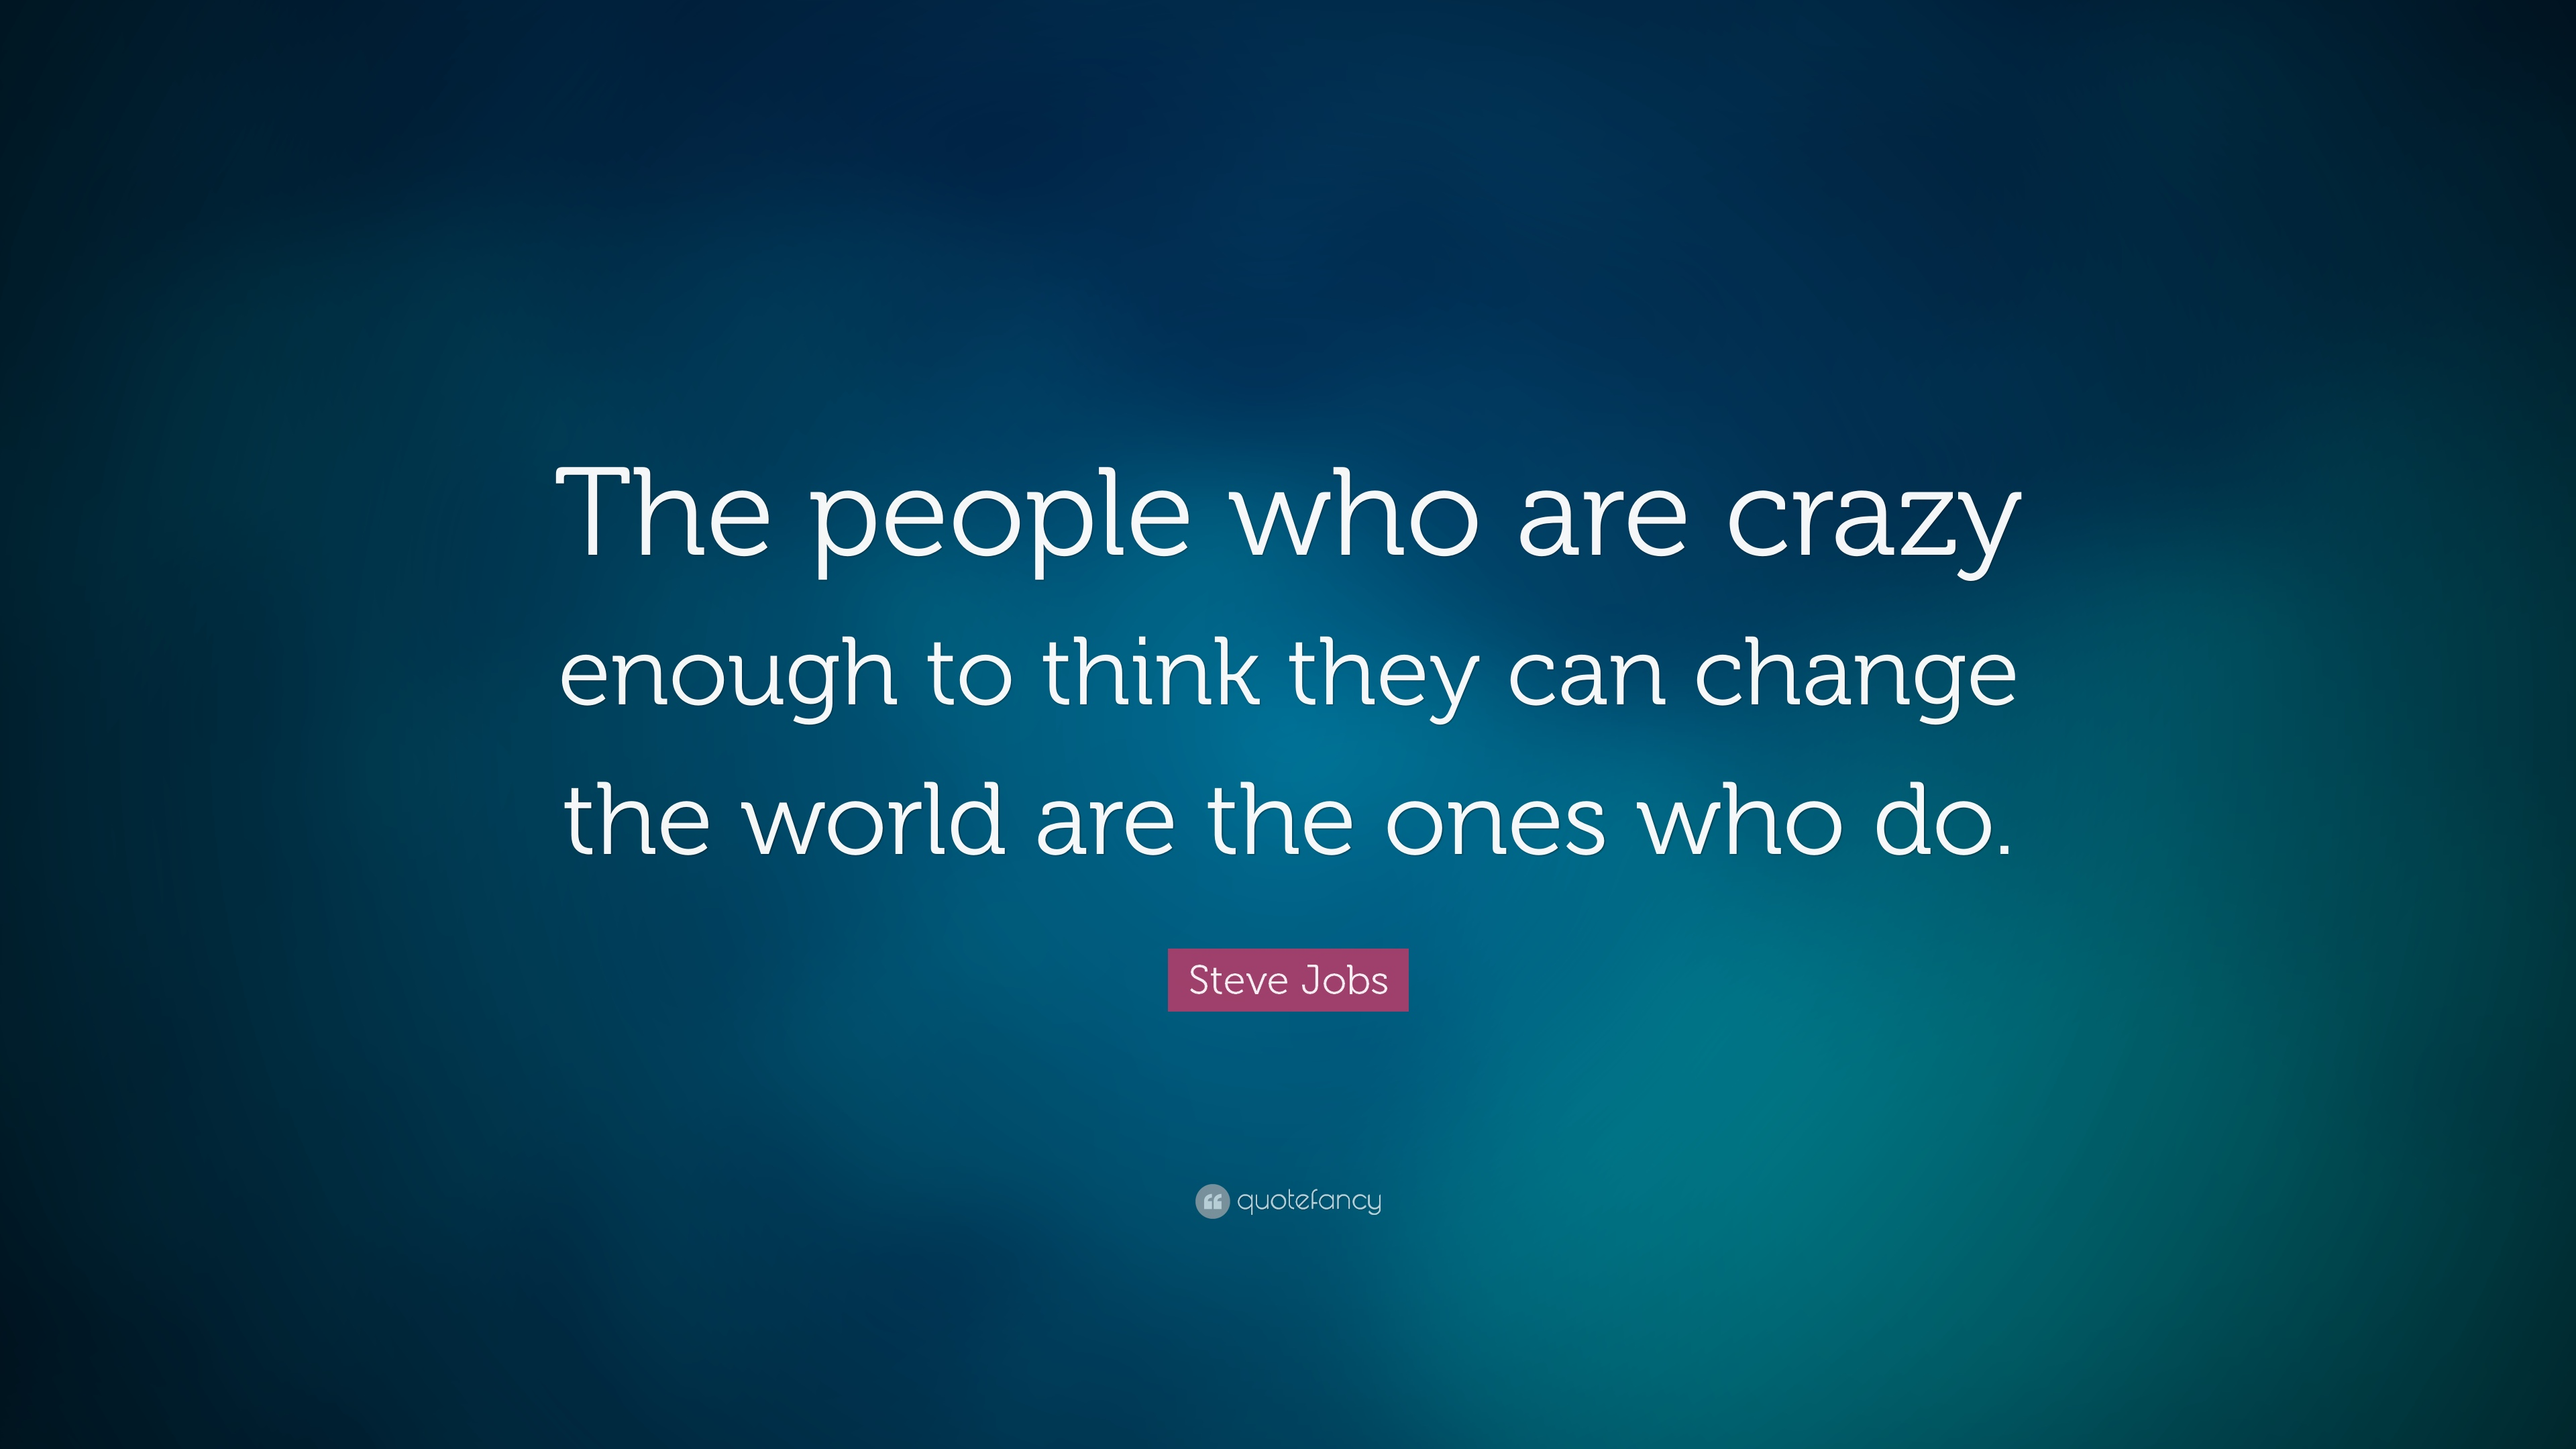 Steve Jobs Quote: U201cThe People Who Are Crazy Enough To Think They Can Change